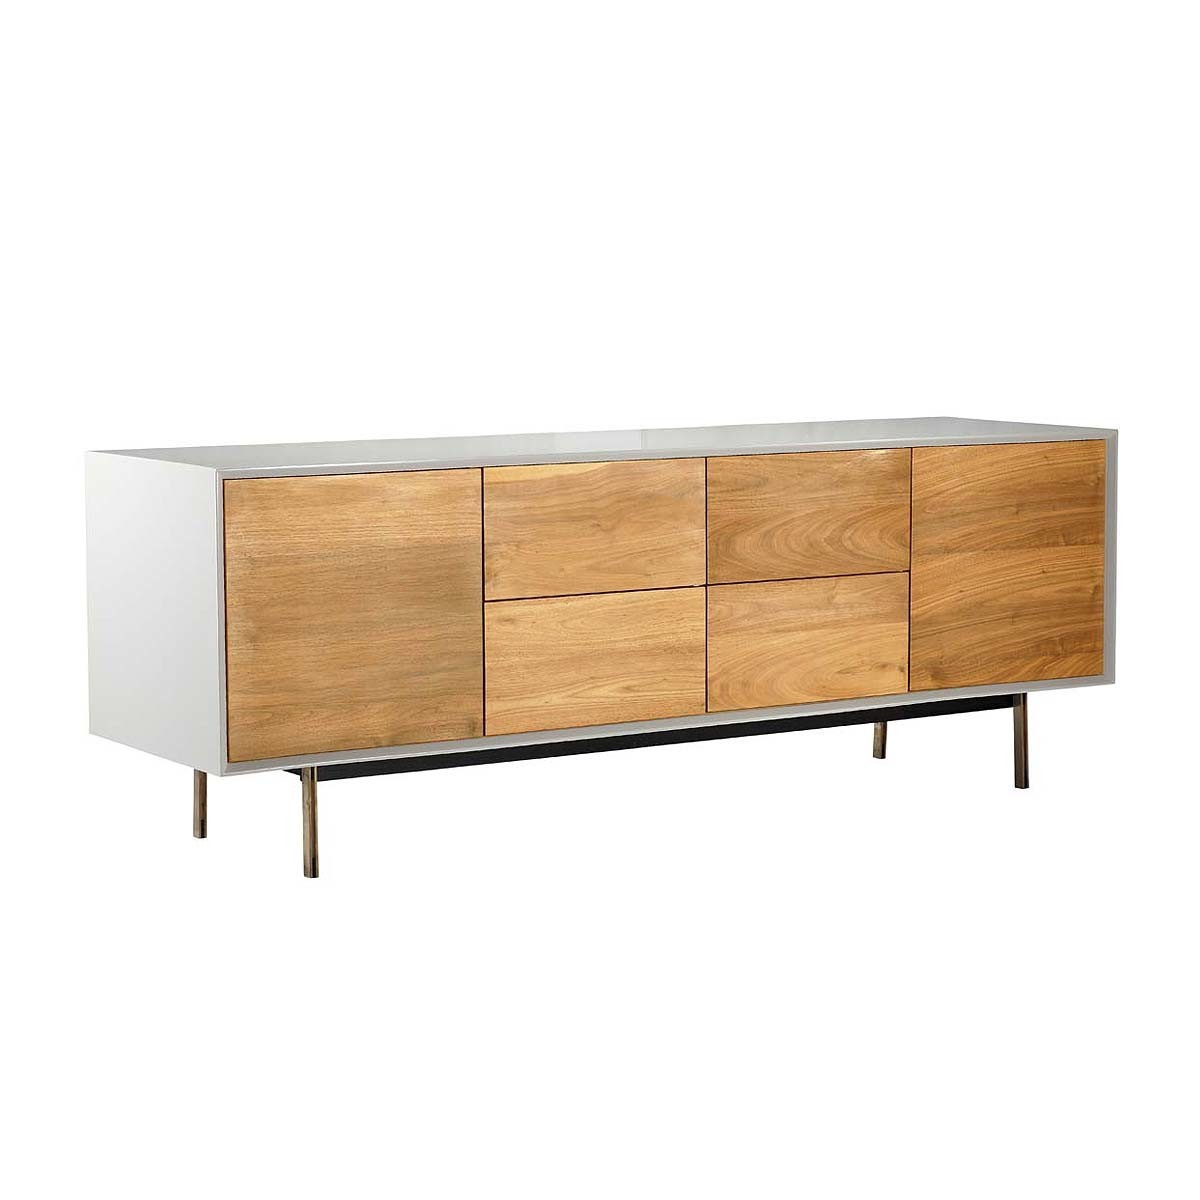 Buffet Sideboard Fantastic Furniture Beech Anzio Buffet Sideboard